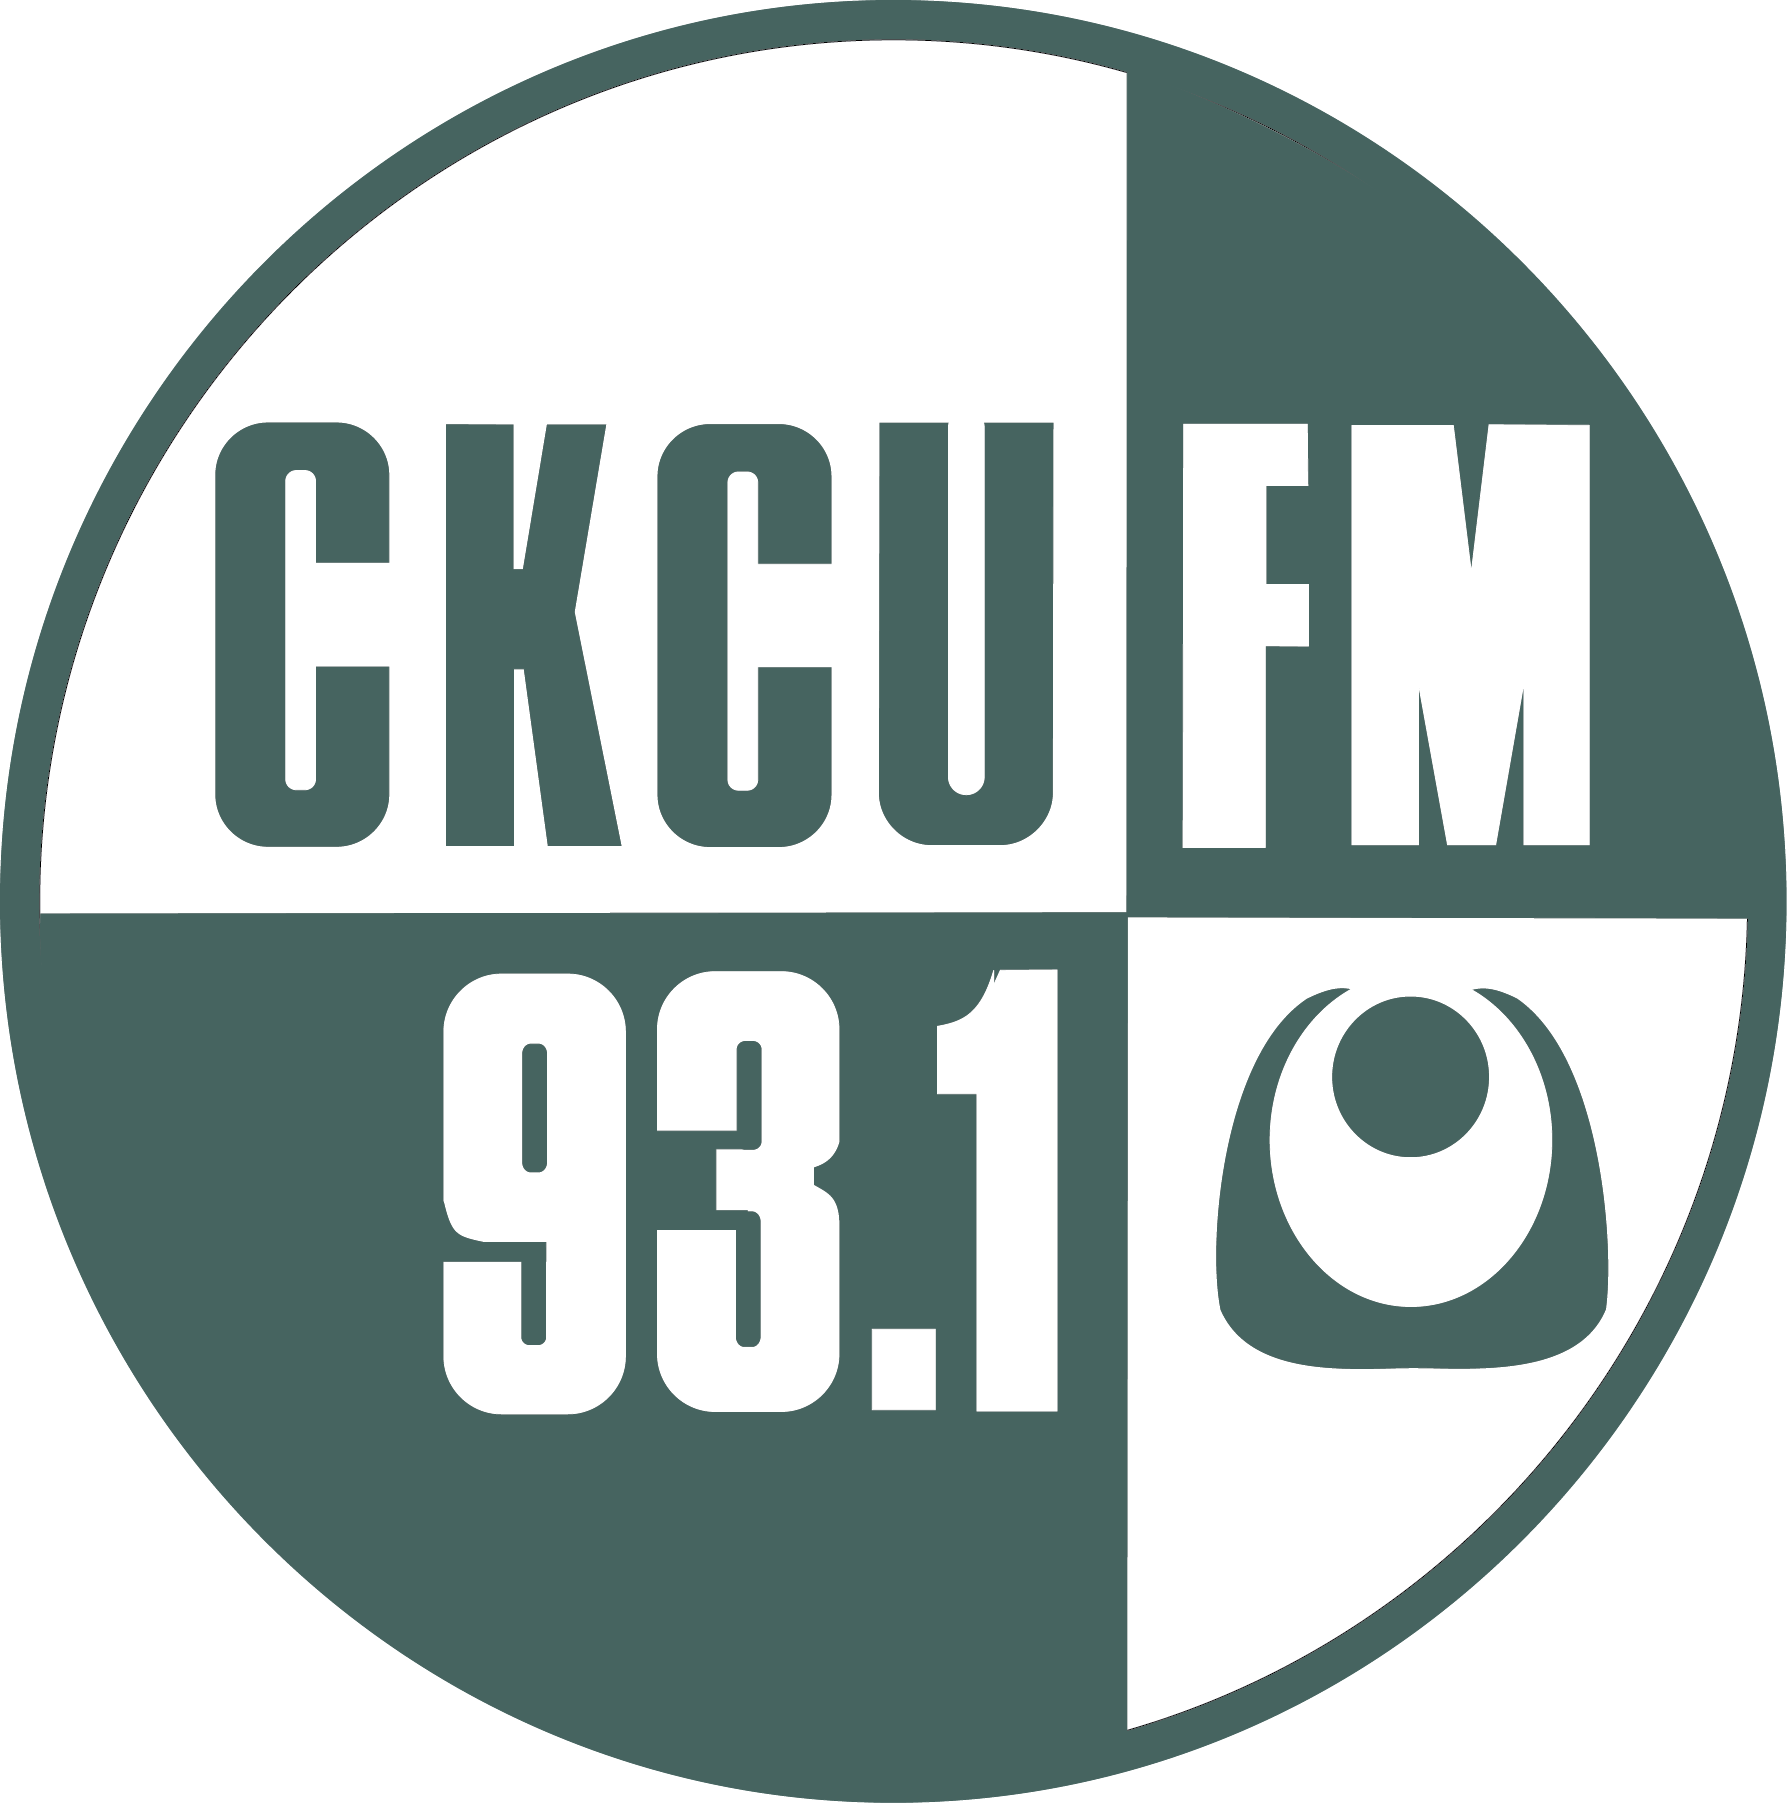 CKCU Radio Interview Segment - Jordana Colomby, a student at Carleton's School of Journalism, stopped by the Re4m workshop to check out what we are up to and to spread the word about Re4m! Listen to what Jordana has to say by clicking on the link below! (re4m's appearance is around 1:03:00)